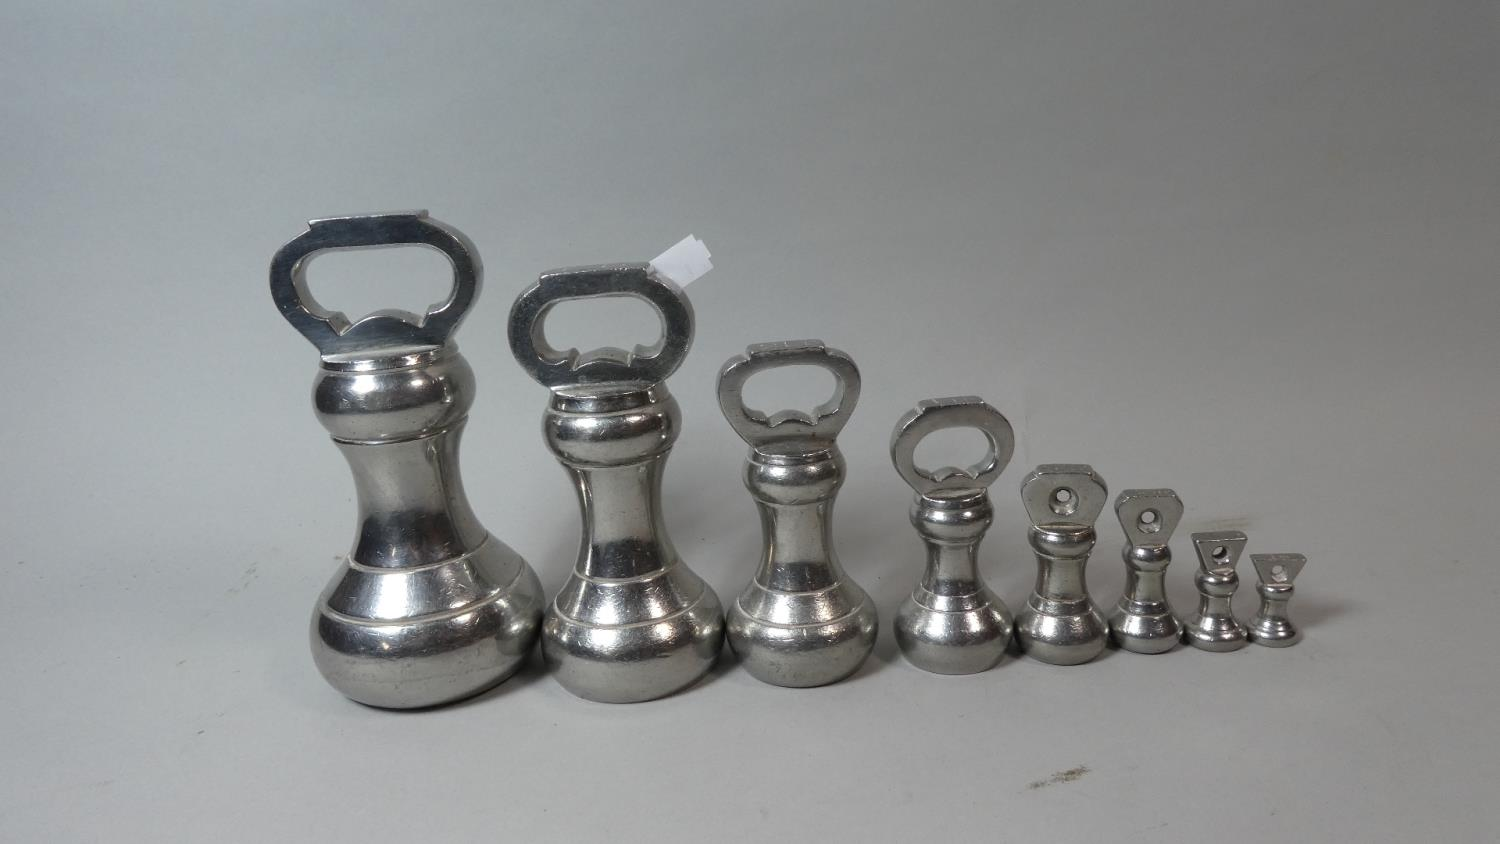 Lot 20 - A Good Set of Eight Silver Plated Bell Weights with Dates From 1937 and 1946, Ranging 7lbs to 1oz